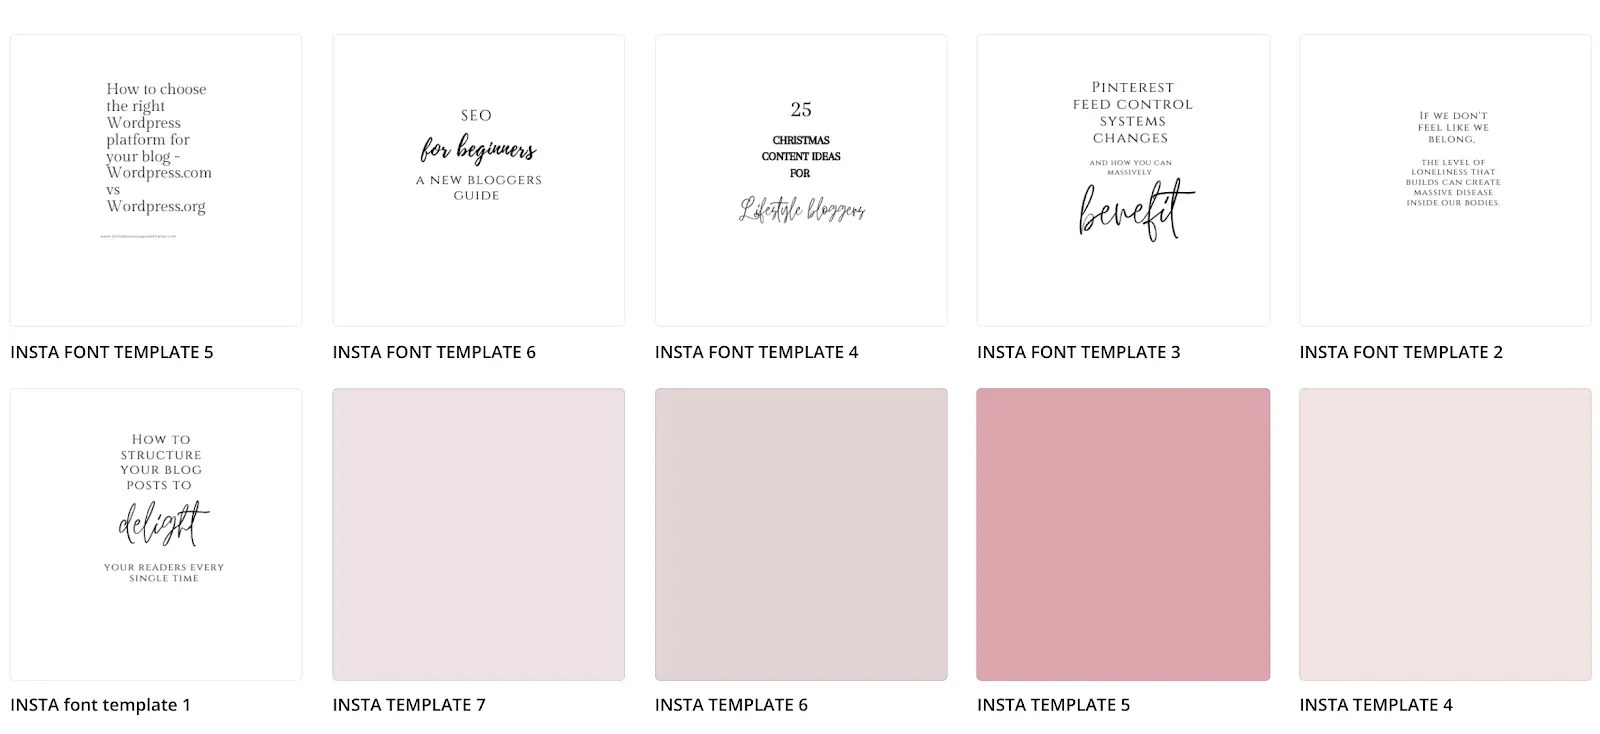 How to create Instagram templates in Canva